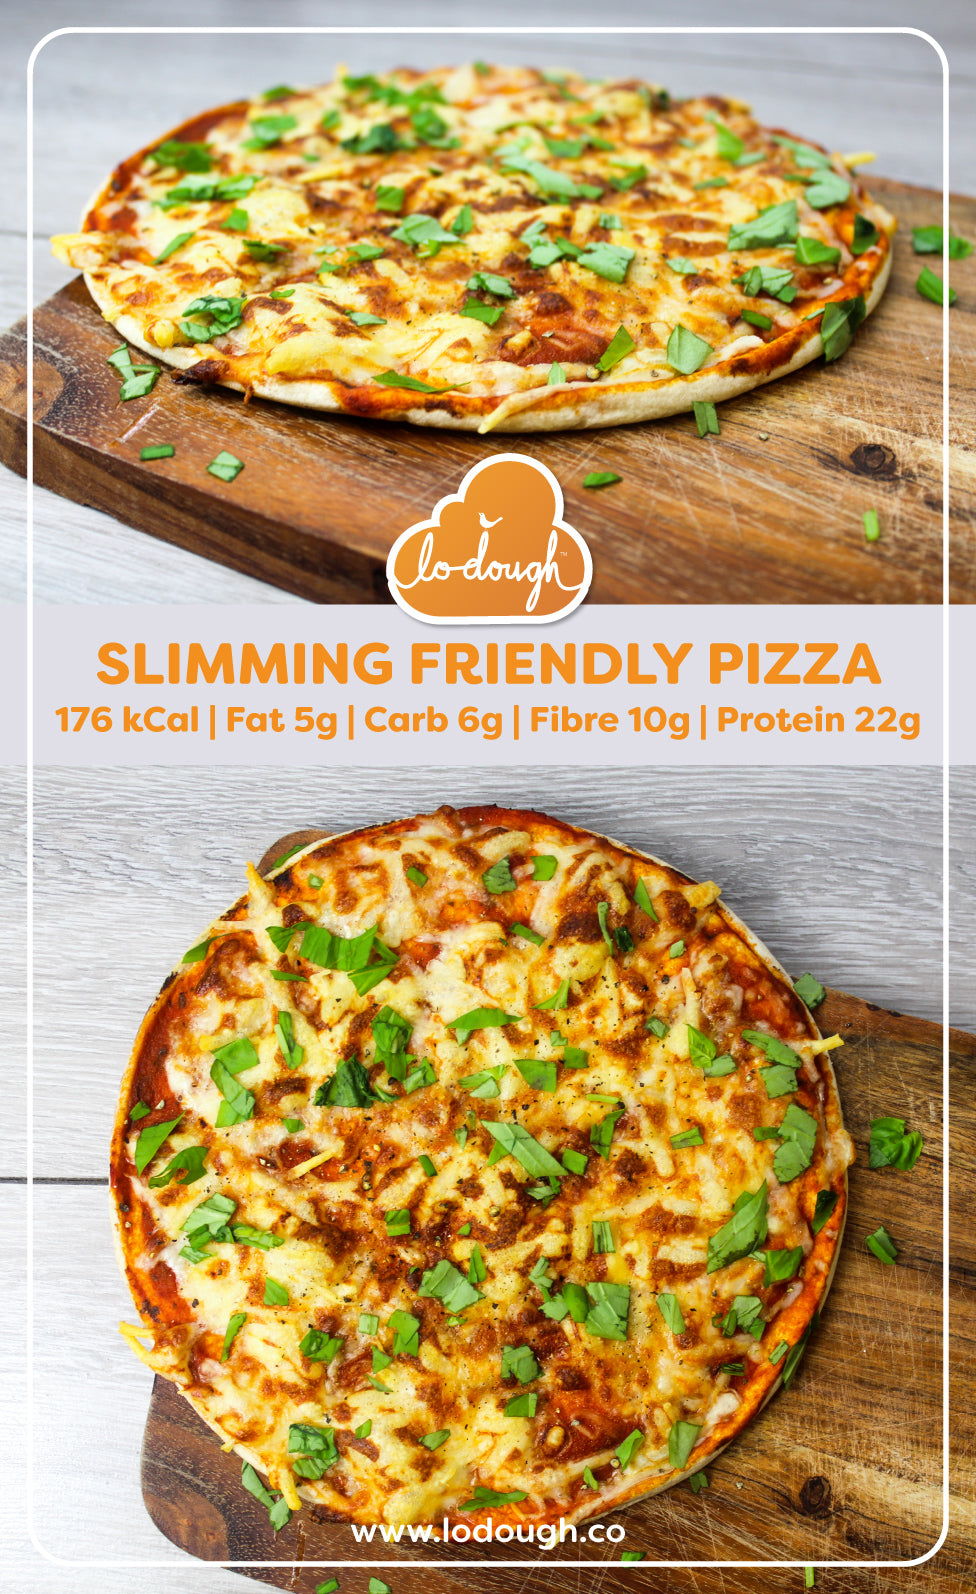 Slimming Friendly Pizza